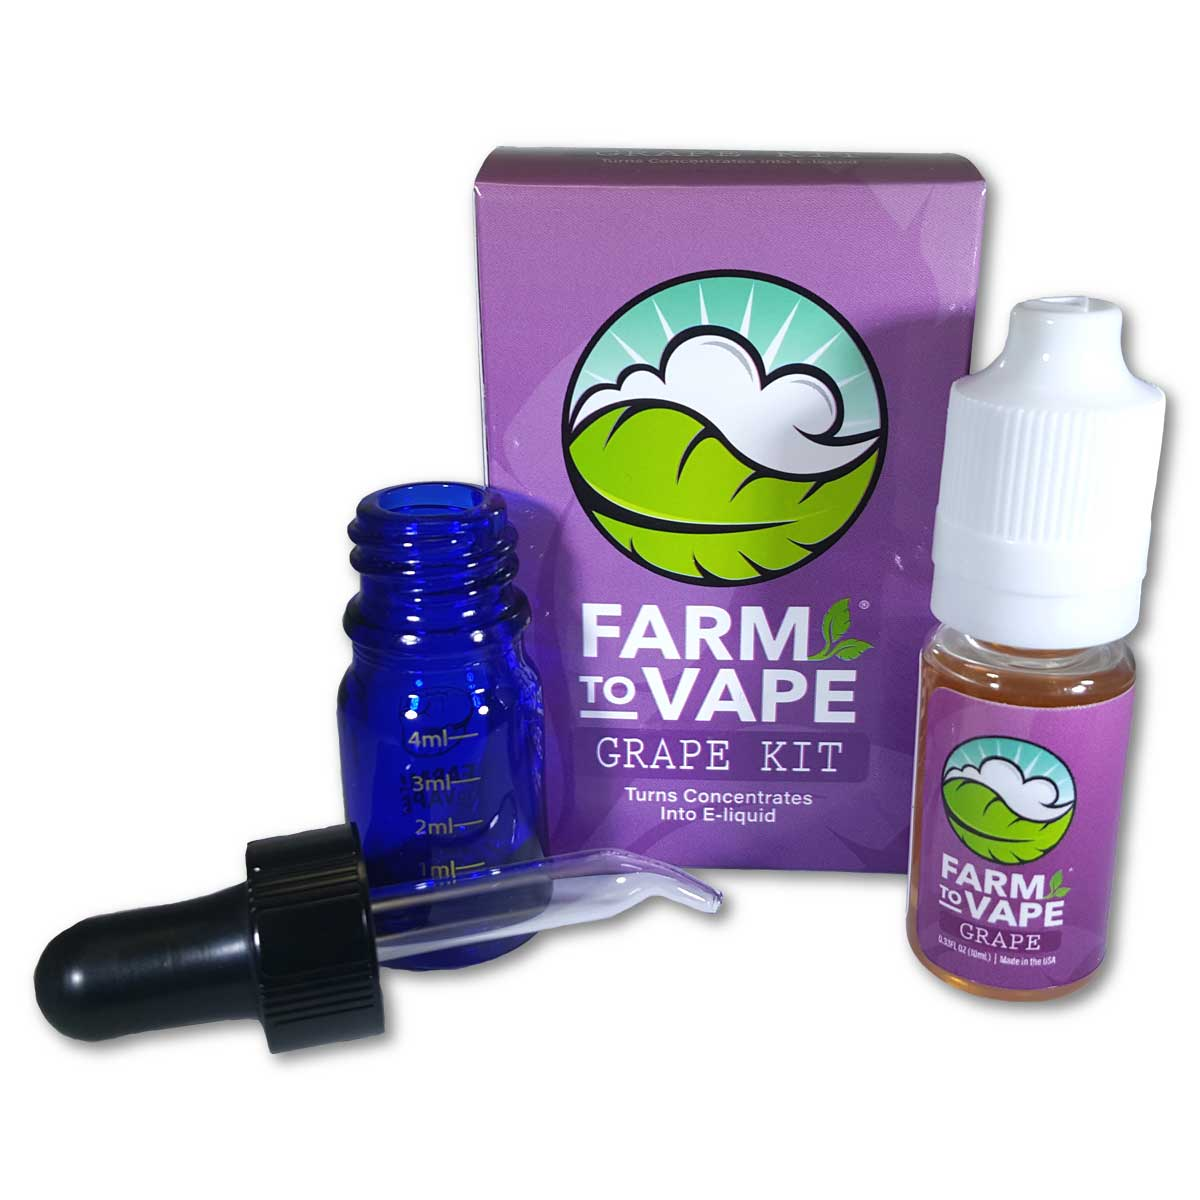 Farm To Vape Kit Turn Concentrates Into E Liquid - What is vehicle invoice price best online vape store